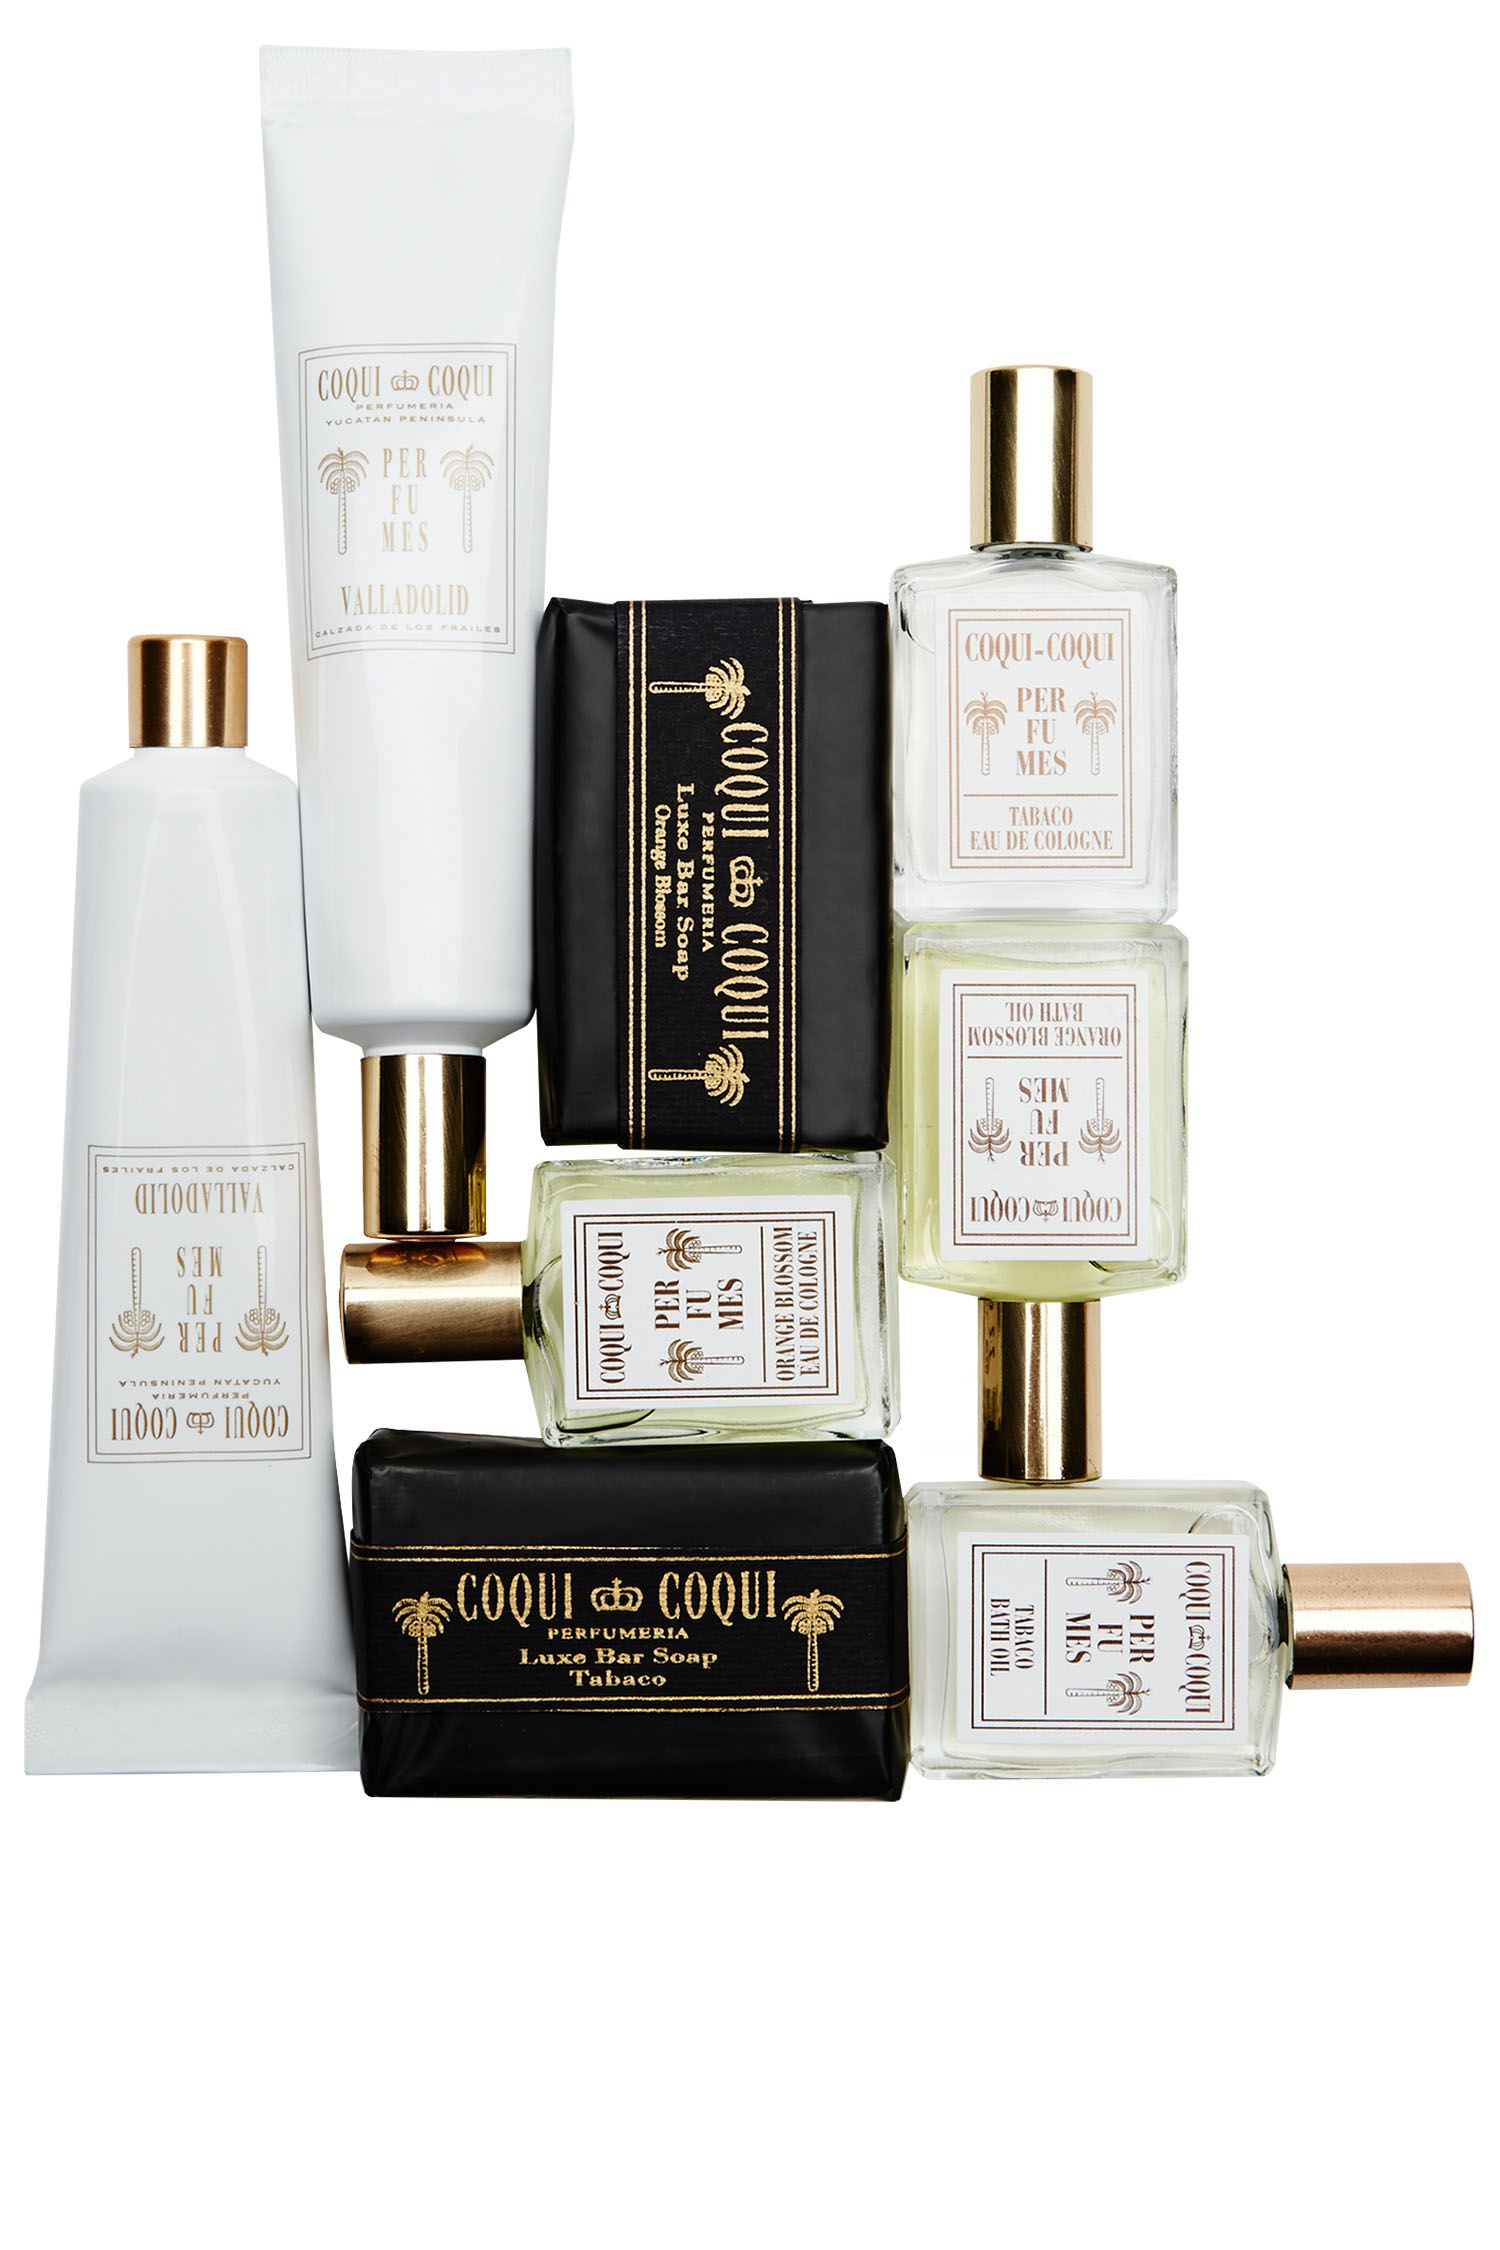 "Upon check-in at <a target=""_blank"" href=""http://www.coquicoquiperfumes.com/"">Coqui Coqui</a>, a remote, luxury destination hotel for A-listers and the fashion set, guests receive a gift box of personalized fragrances, soaps and creams—handmade in a small lab in the mythical town of Valladolid."